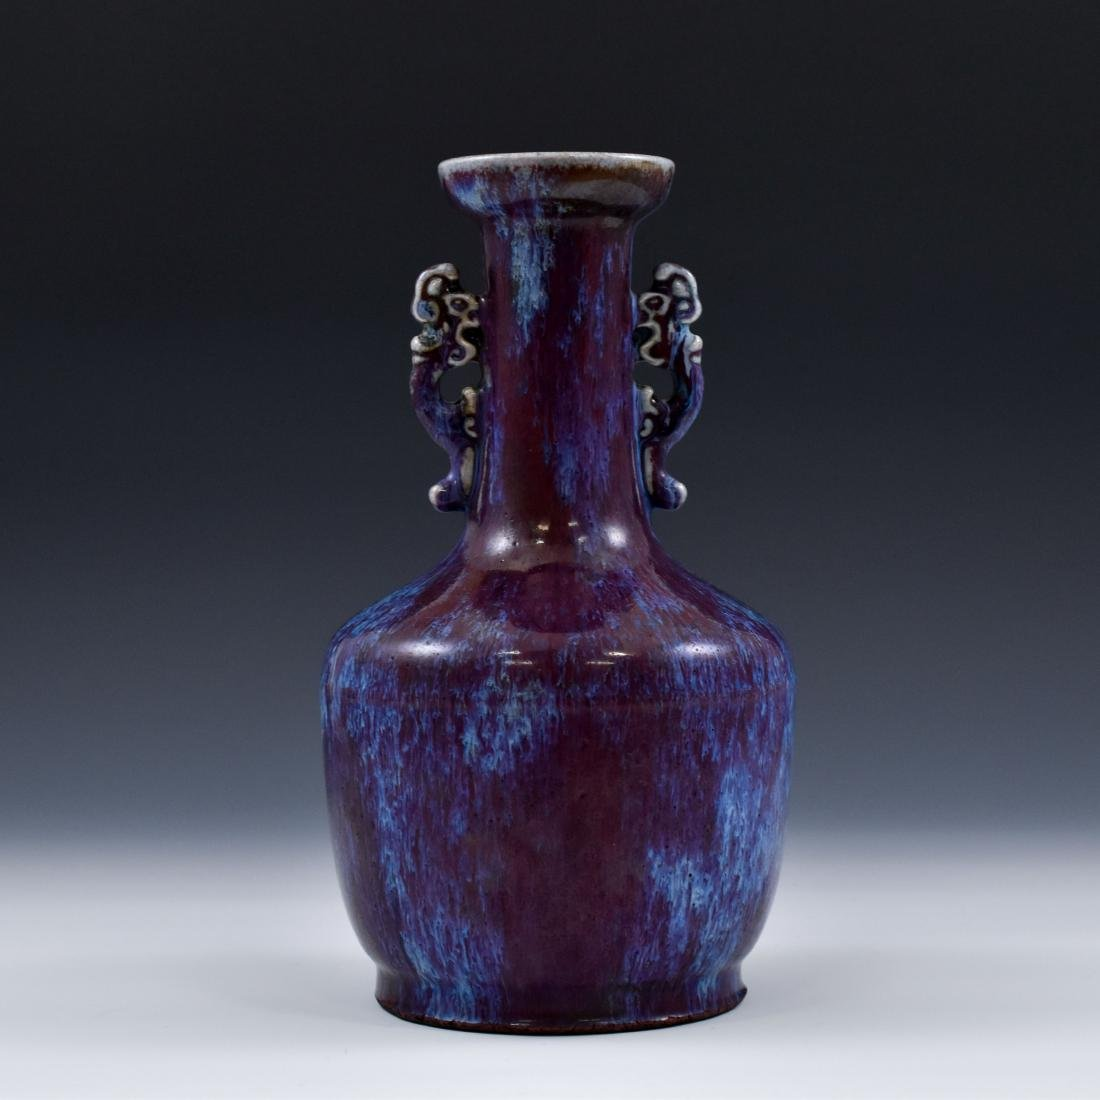 18TH C FLAMBE GLAZE ARROW VASE WITH PIXUE EARS - 3